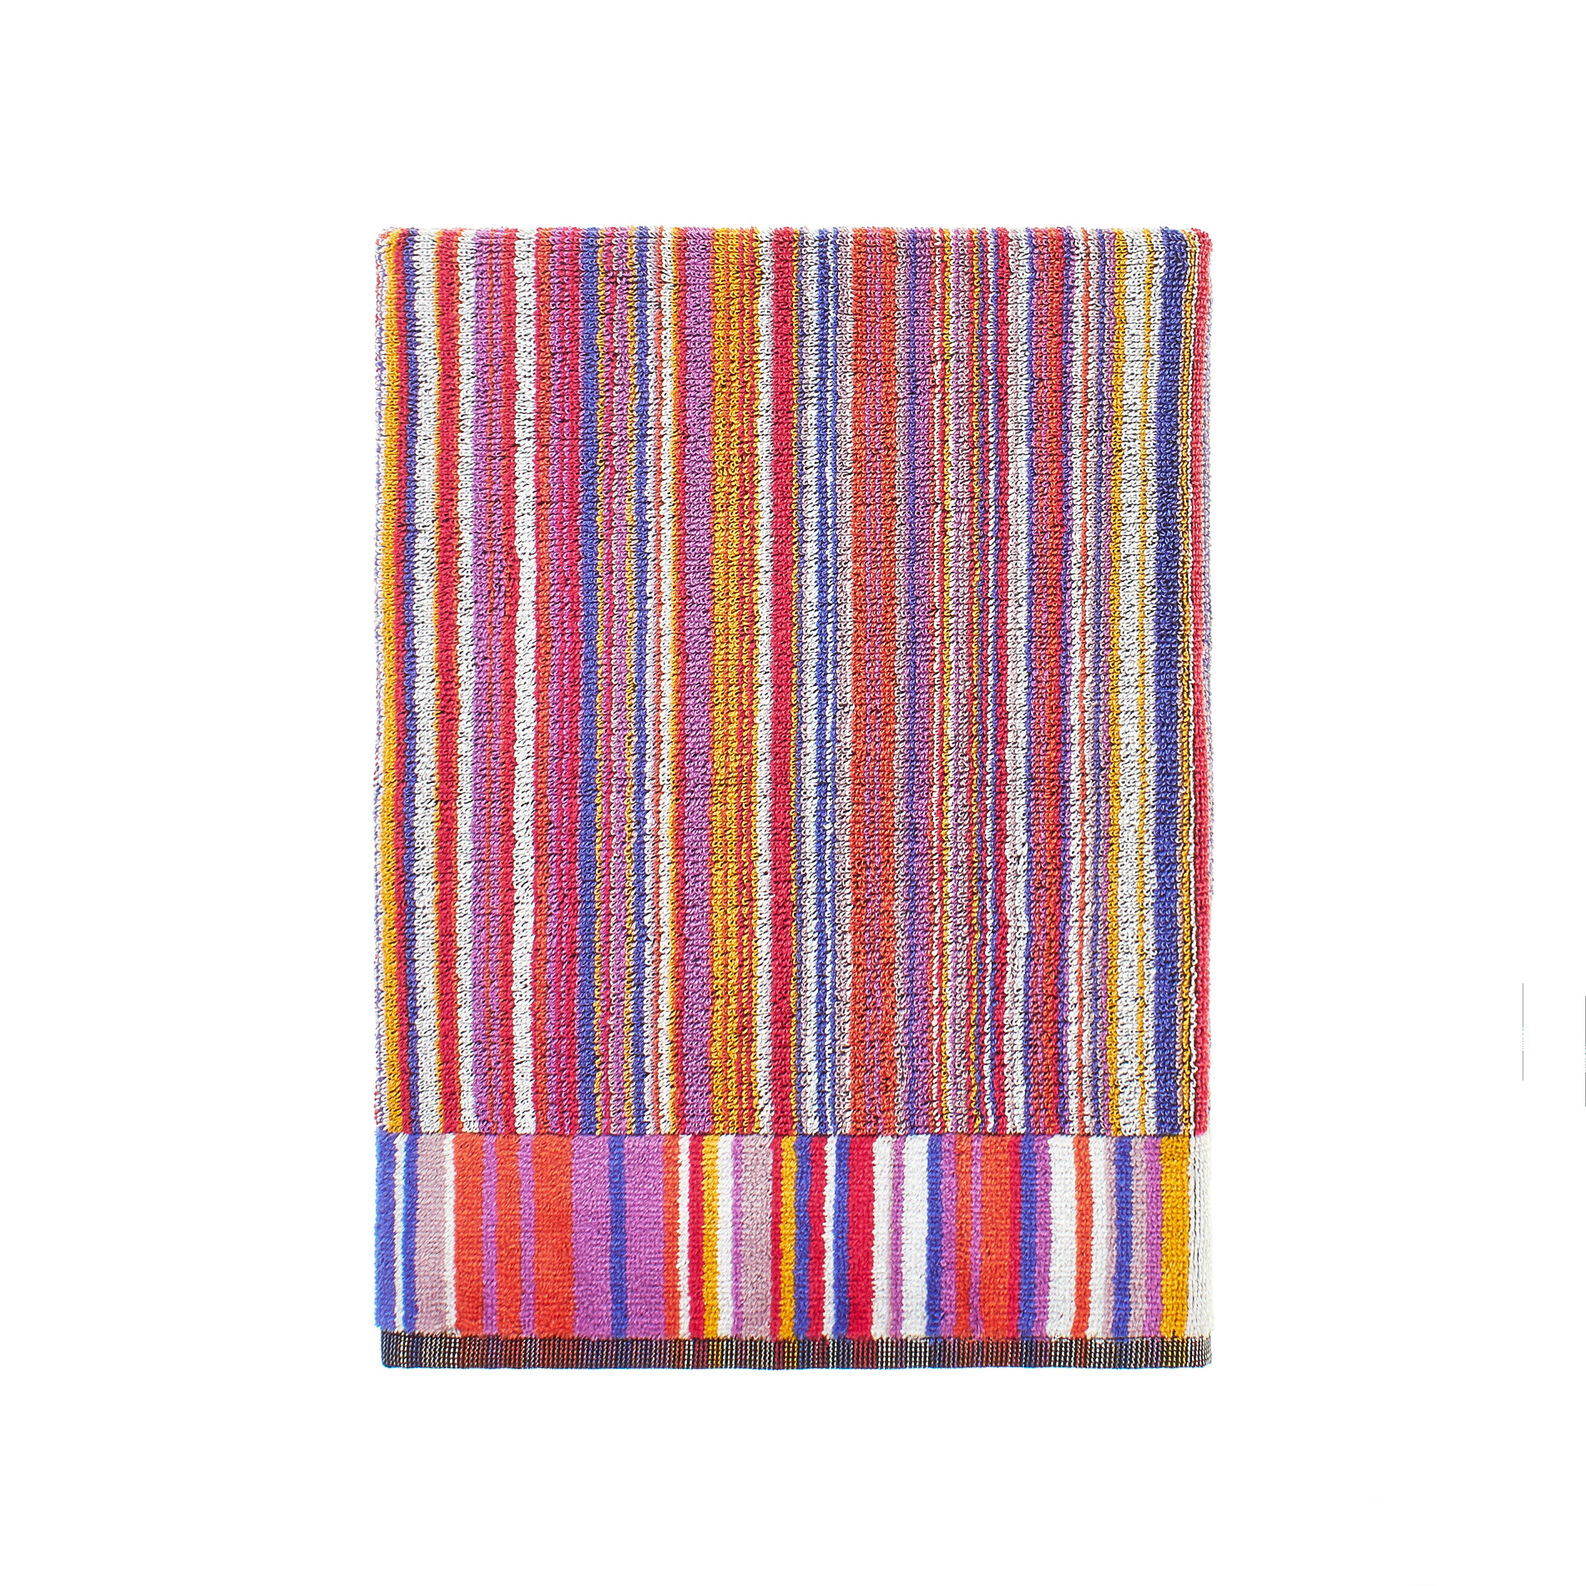 100% cotton towel with jacquard design pattern